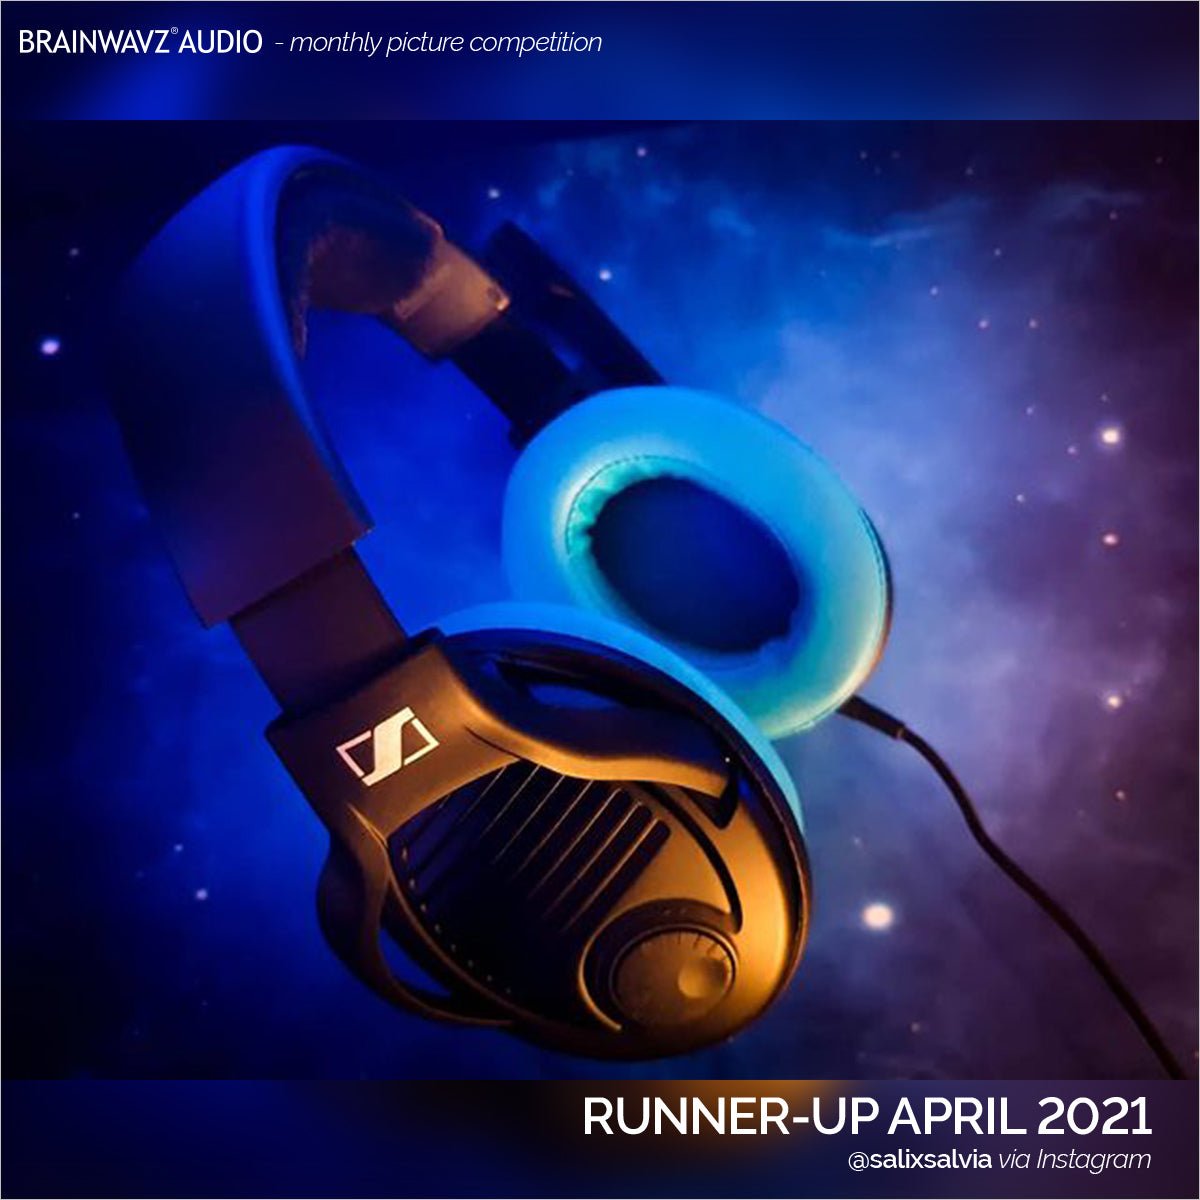 Runner up in Brainwavz monthly photo comp - Sennheiser PC37X headphones with Brainwavz turquoise oval earpads